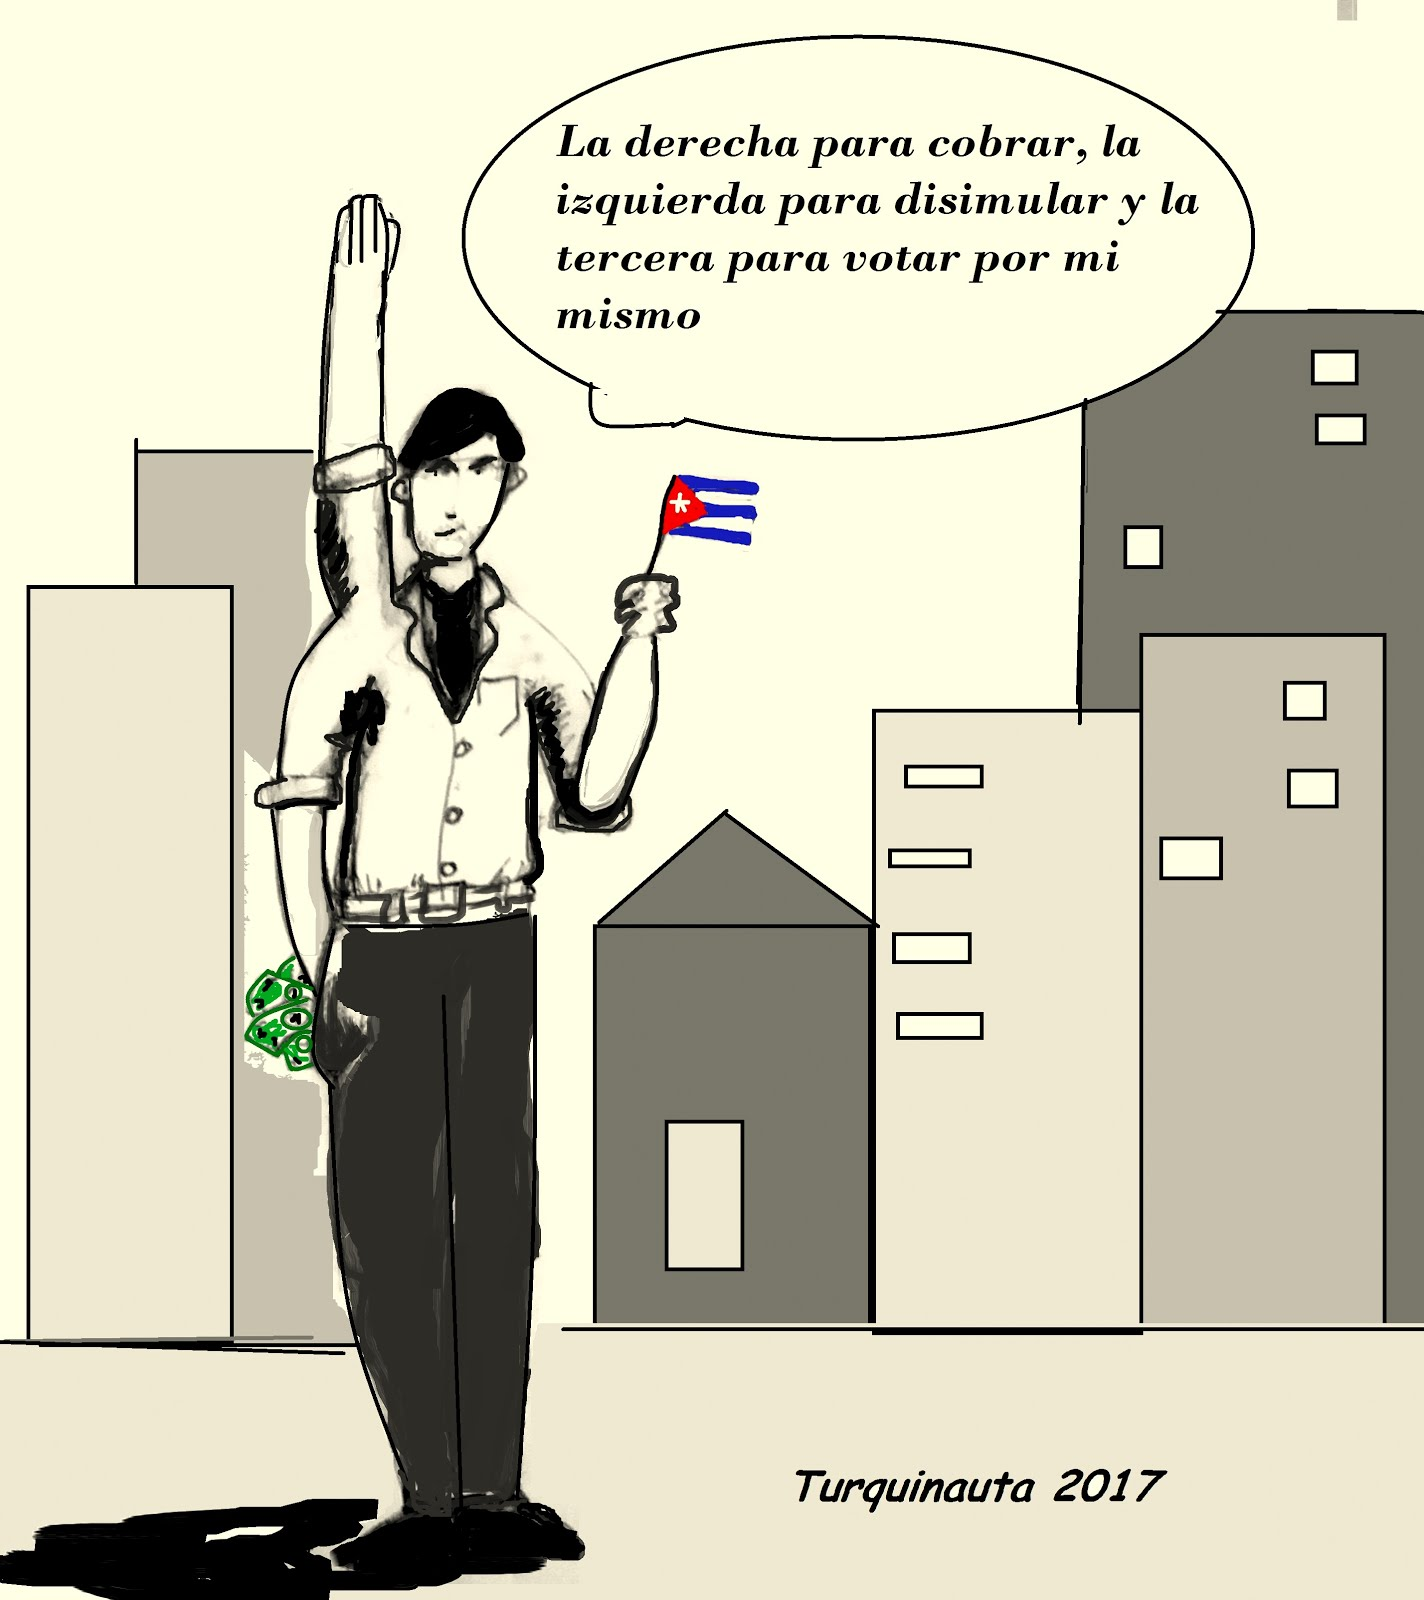 Caricaturas en los blogs